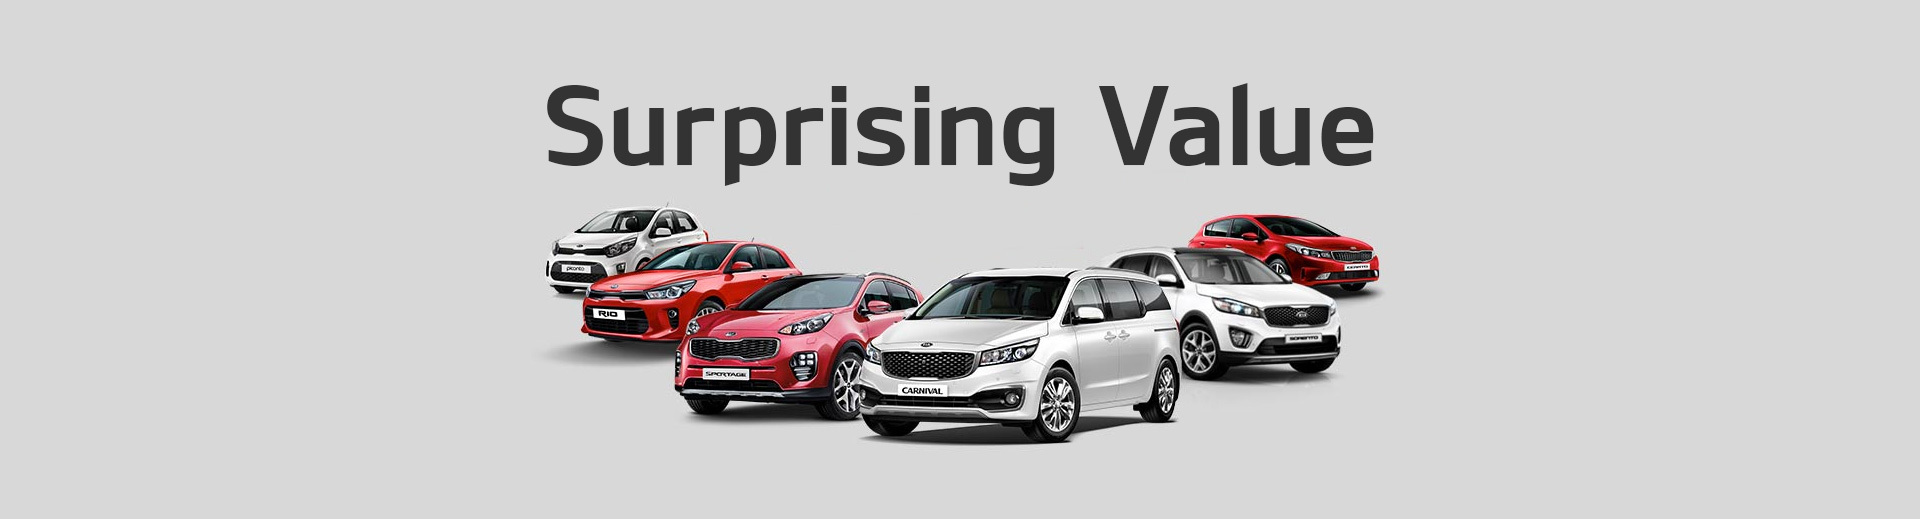 Kia - National Offer - Surprising Value